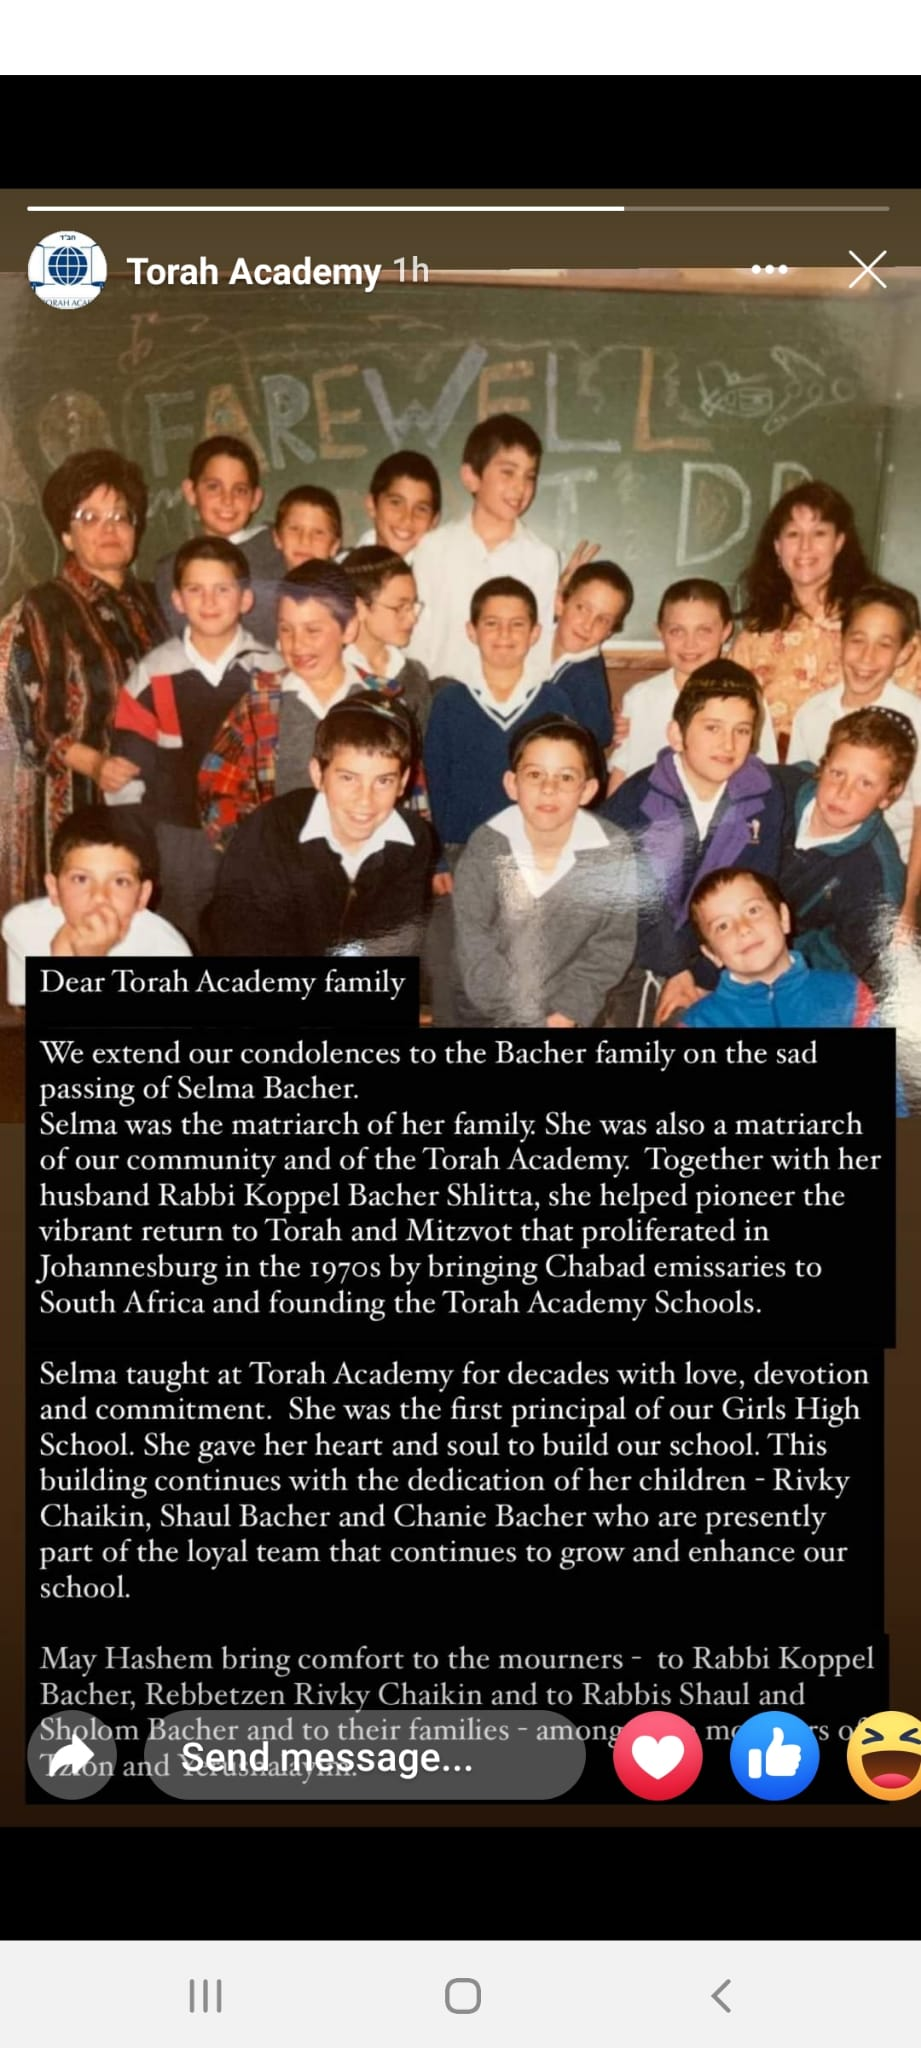 In a very touching tribute to the late Mrs. Selma Bacher who appears on the upper left side of this picture, we see one of the boys classes that Selma taught at Torah Academy in Johannesburg. In this picture, our son Dovid Pinchas appears as the tallest boy on the top row.